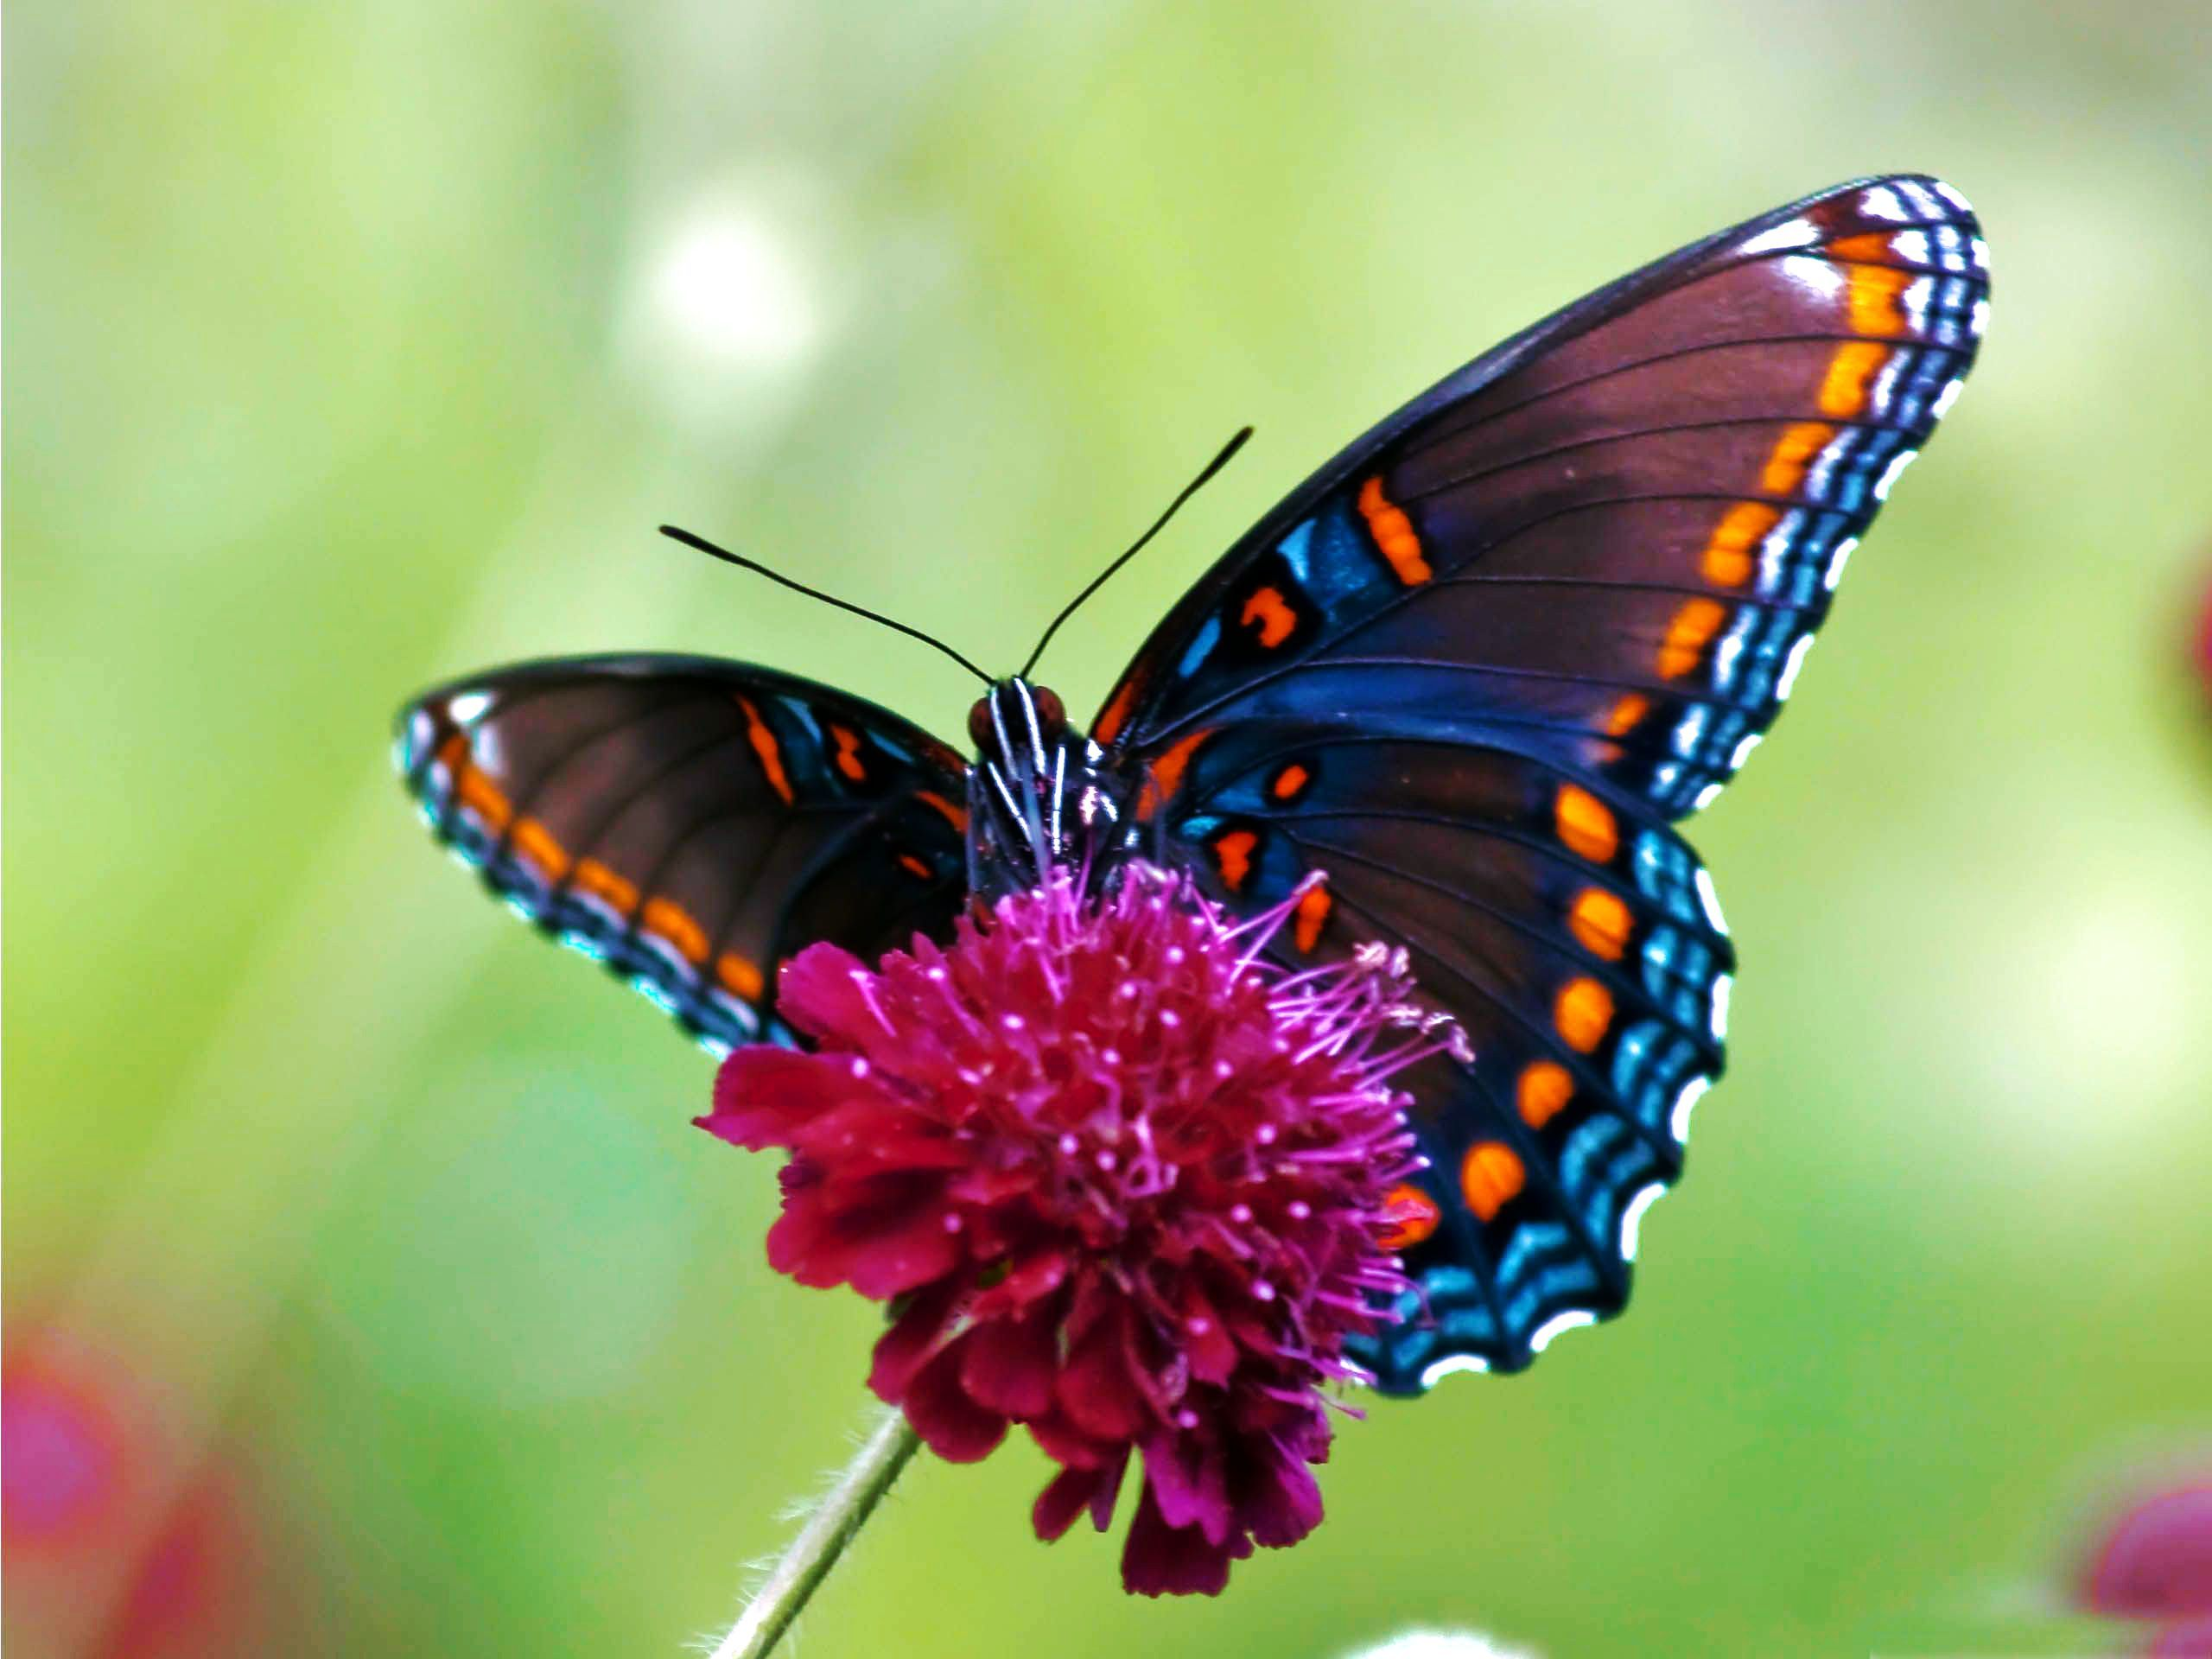 Illustrations Of Butterflies Hd Colorful Butterfly Wallpaper